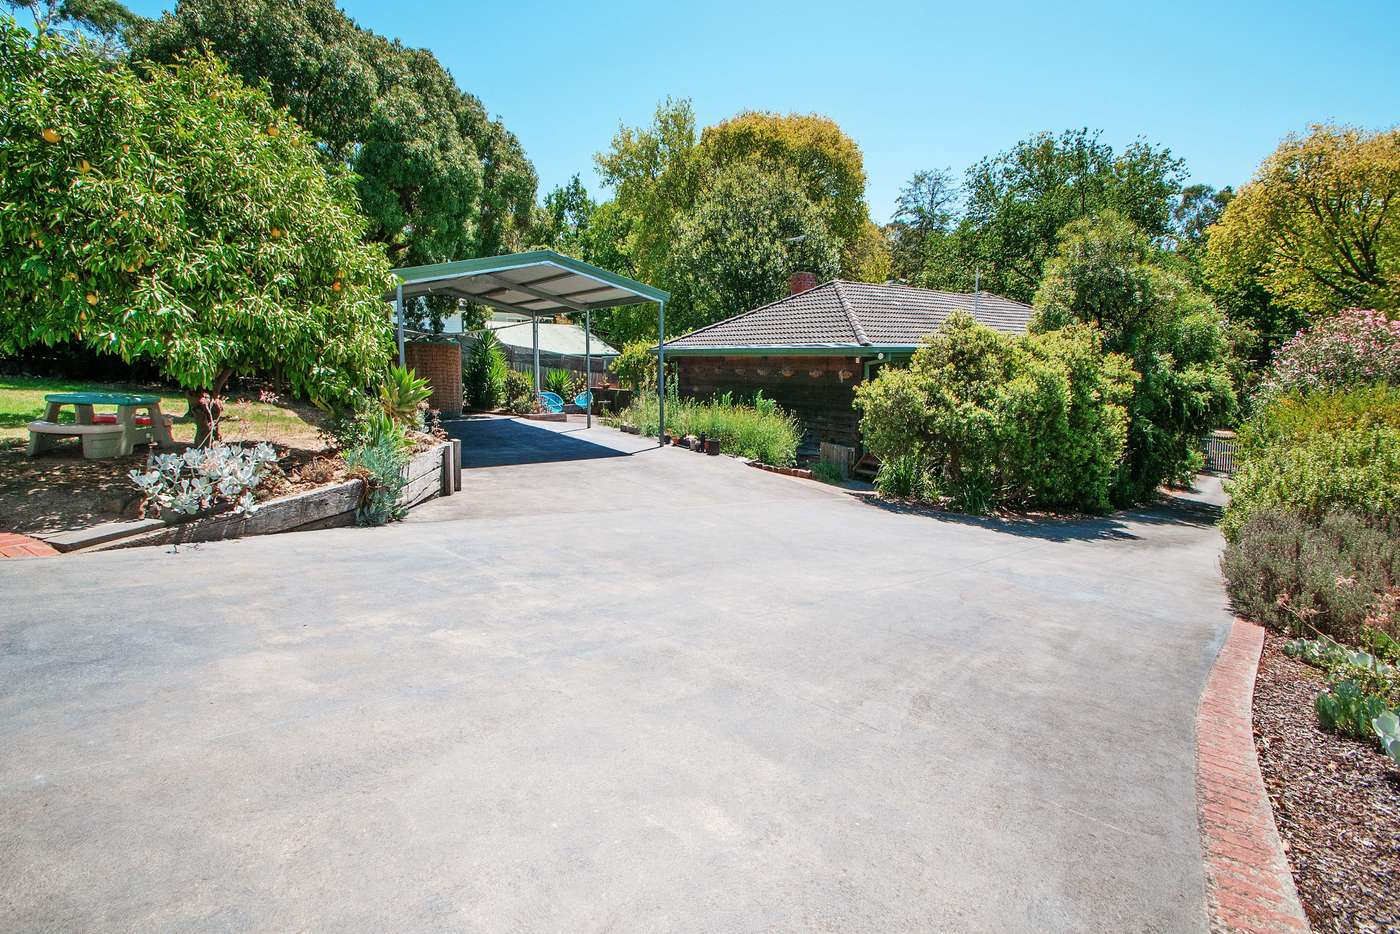 Main view of Homely house listing, 26 Lindisfarne Avenue, Croydon VIC 3136